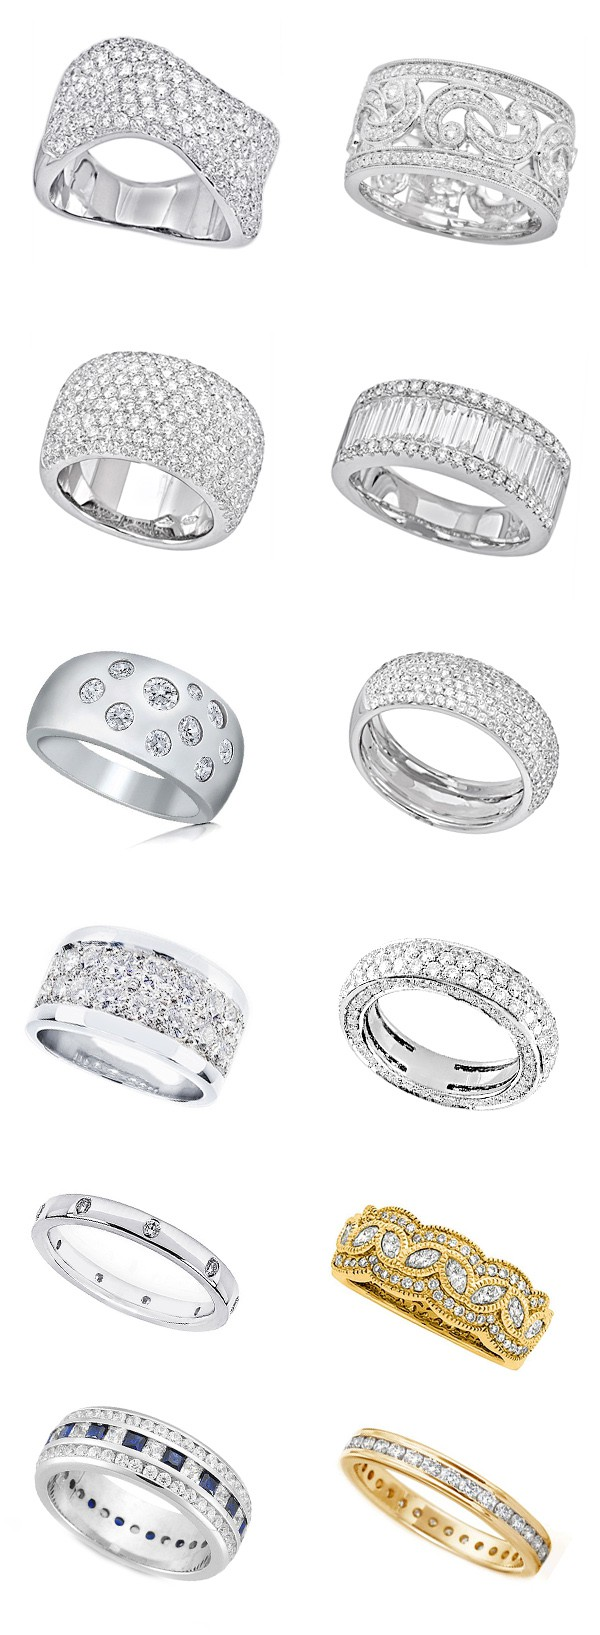 Carlsbad Engagement Rings